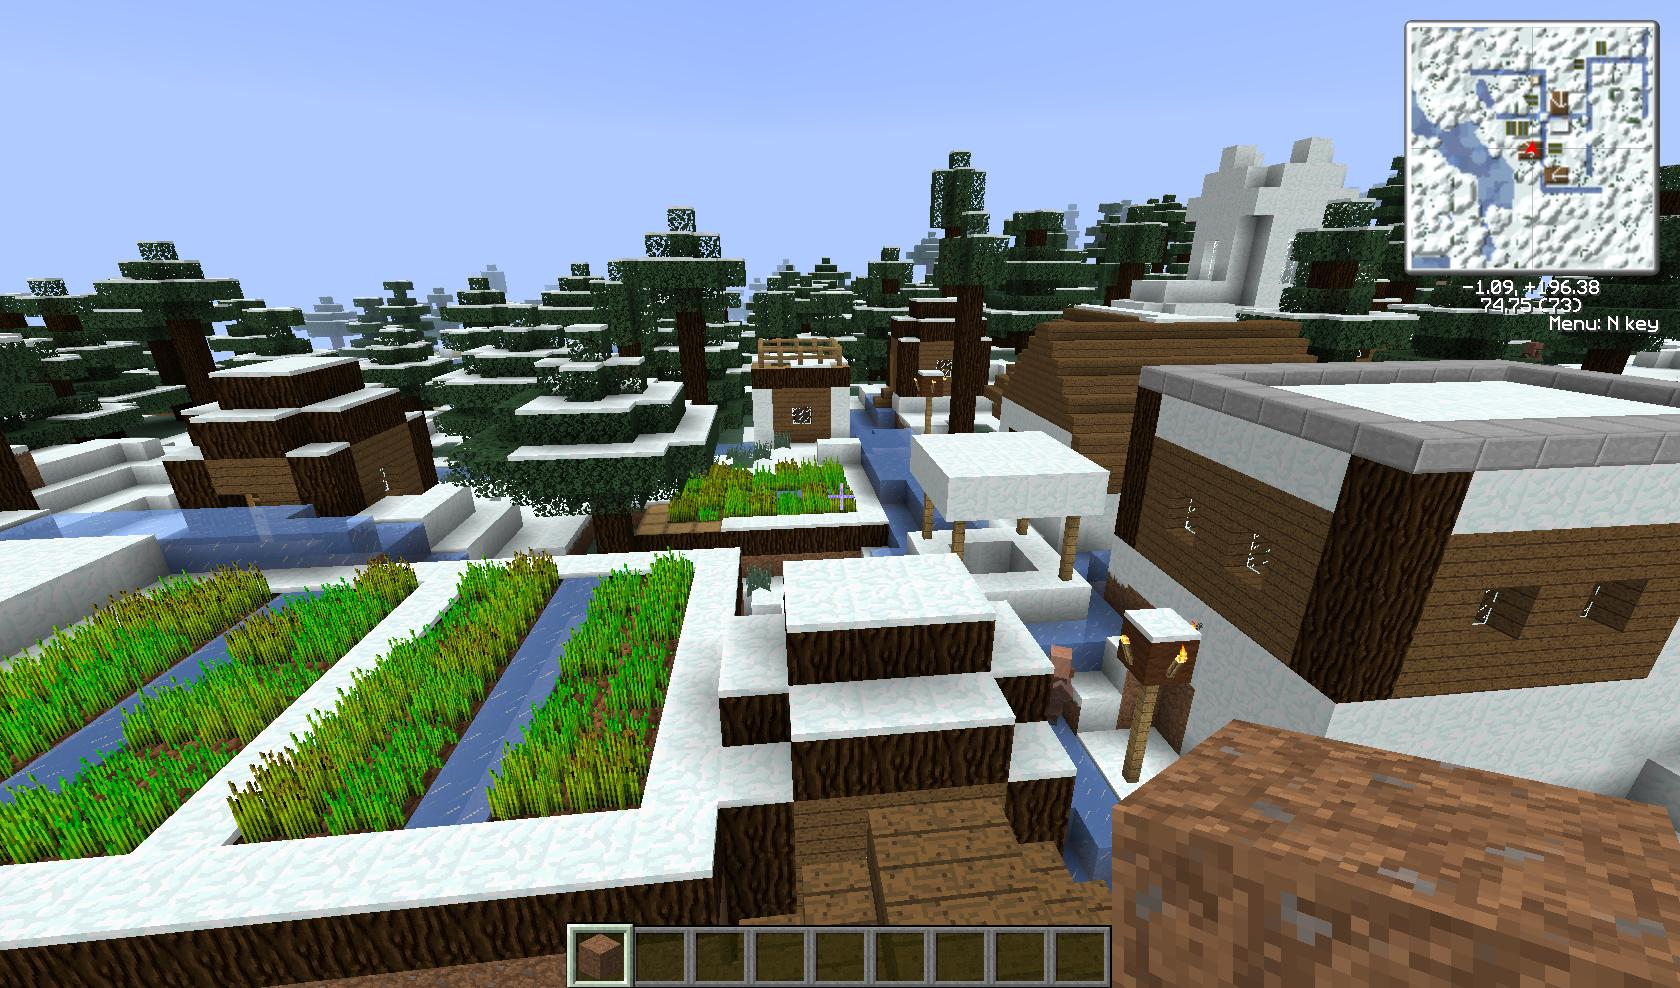 http://minecraft-forum.net/wp-content/uploads/2013/03/77c4b__More-Village-Biomes-Mod-3.jpg